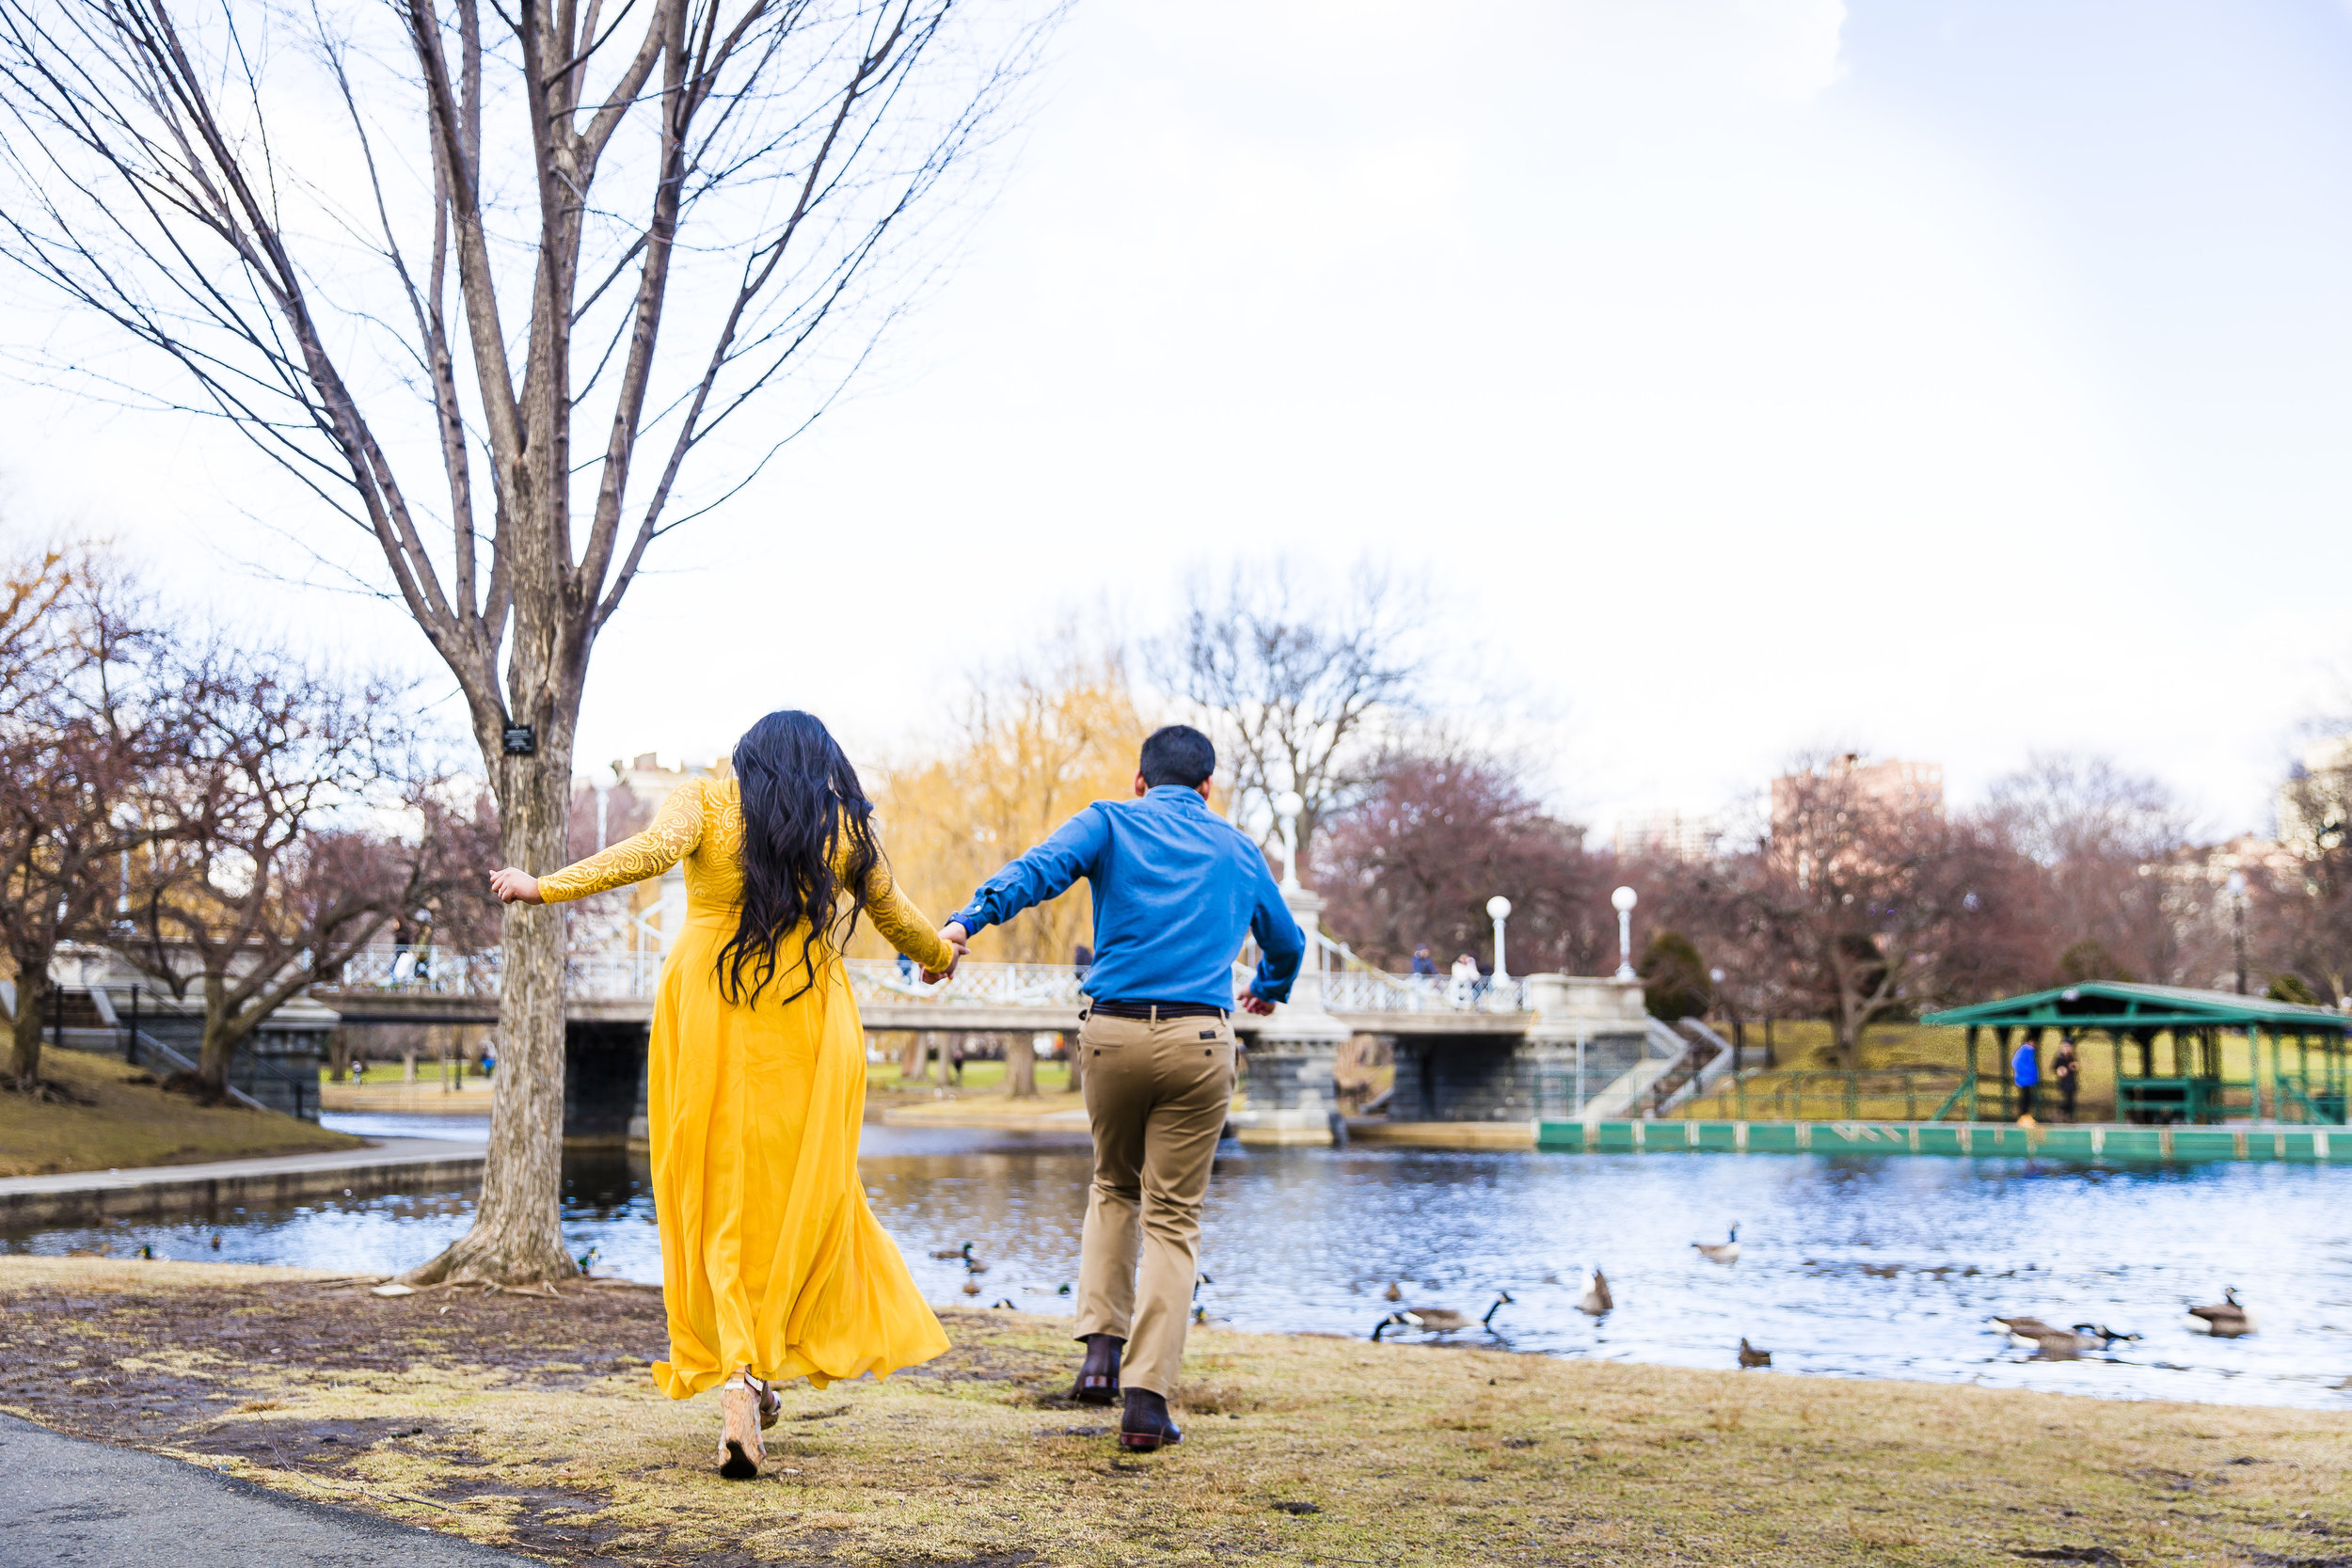 314A0966 Giovanni The Photographer Boston Engagment Photography Waterfront - Christopher Columbus Park - Public GardenPhotography School.jpg